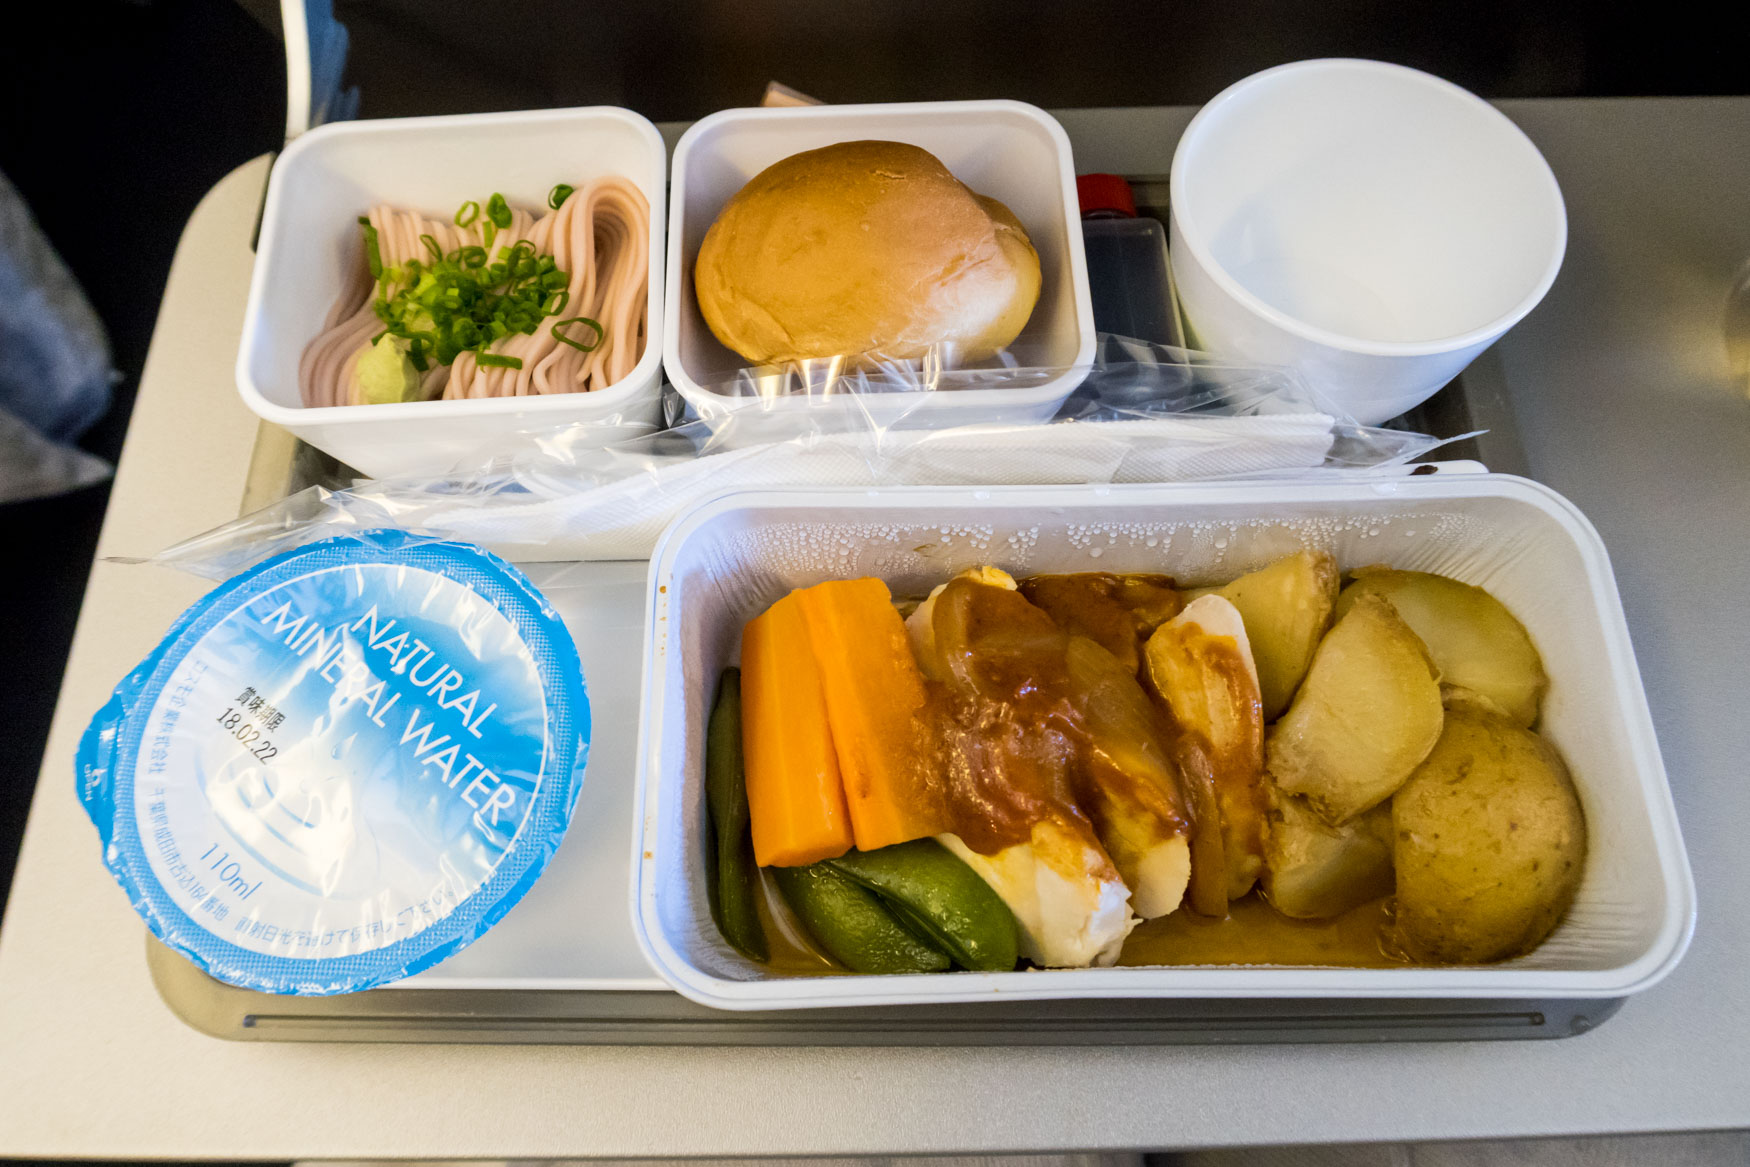 Cathay Pacific Airways Economy Class Meal